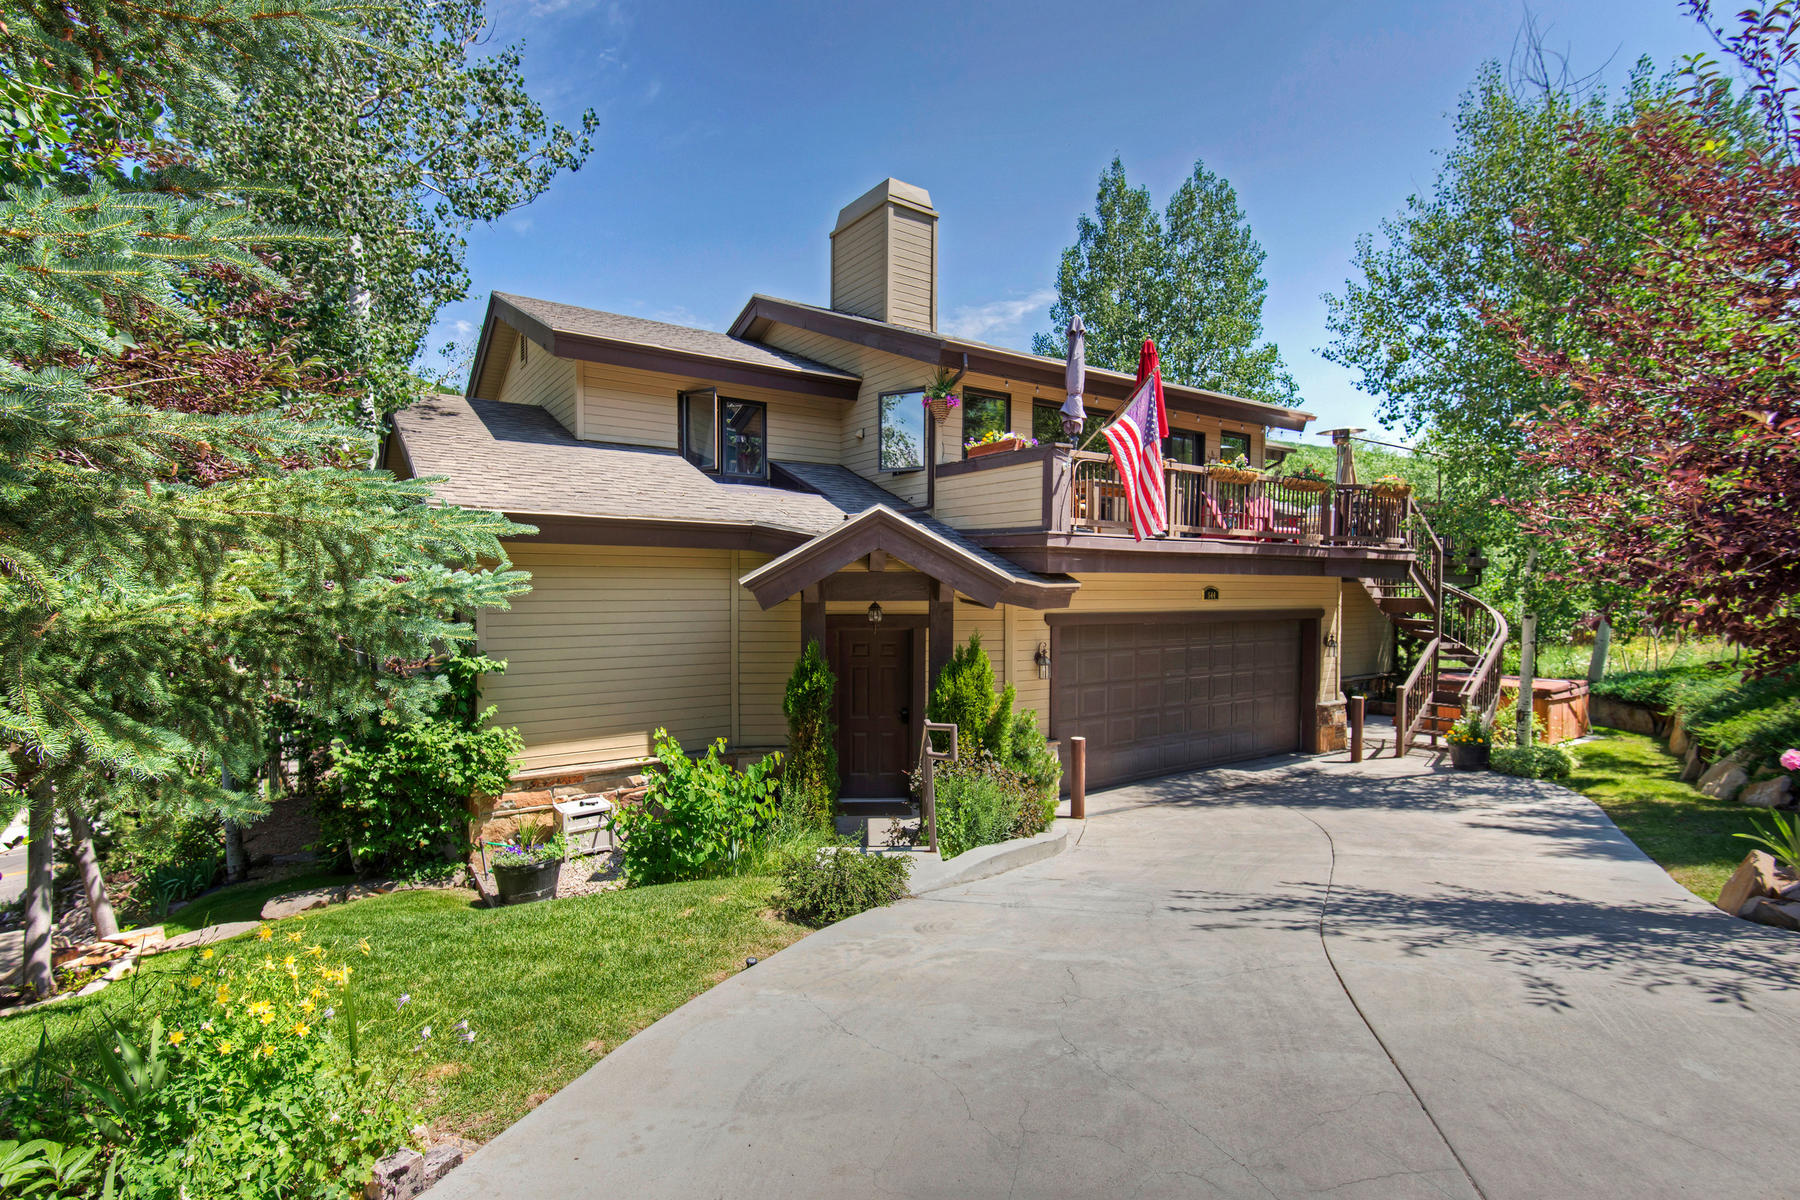 Condominium for Sale at Ultra Rare Condo Optimally Situated Between Old Town And Deer Valley! 544 Deer Valley Loop #A Park City, Utah, 84060 United States